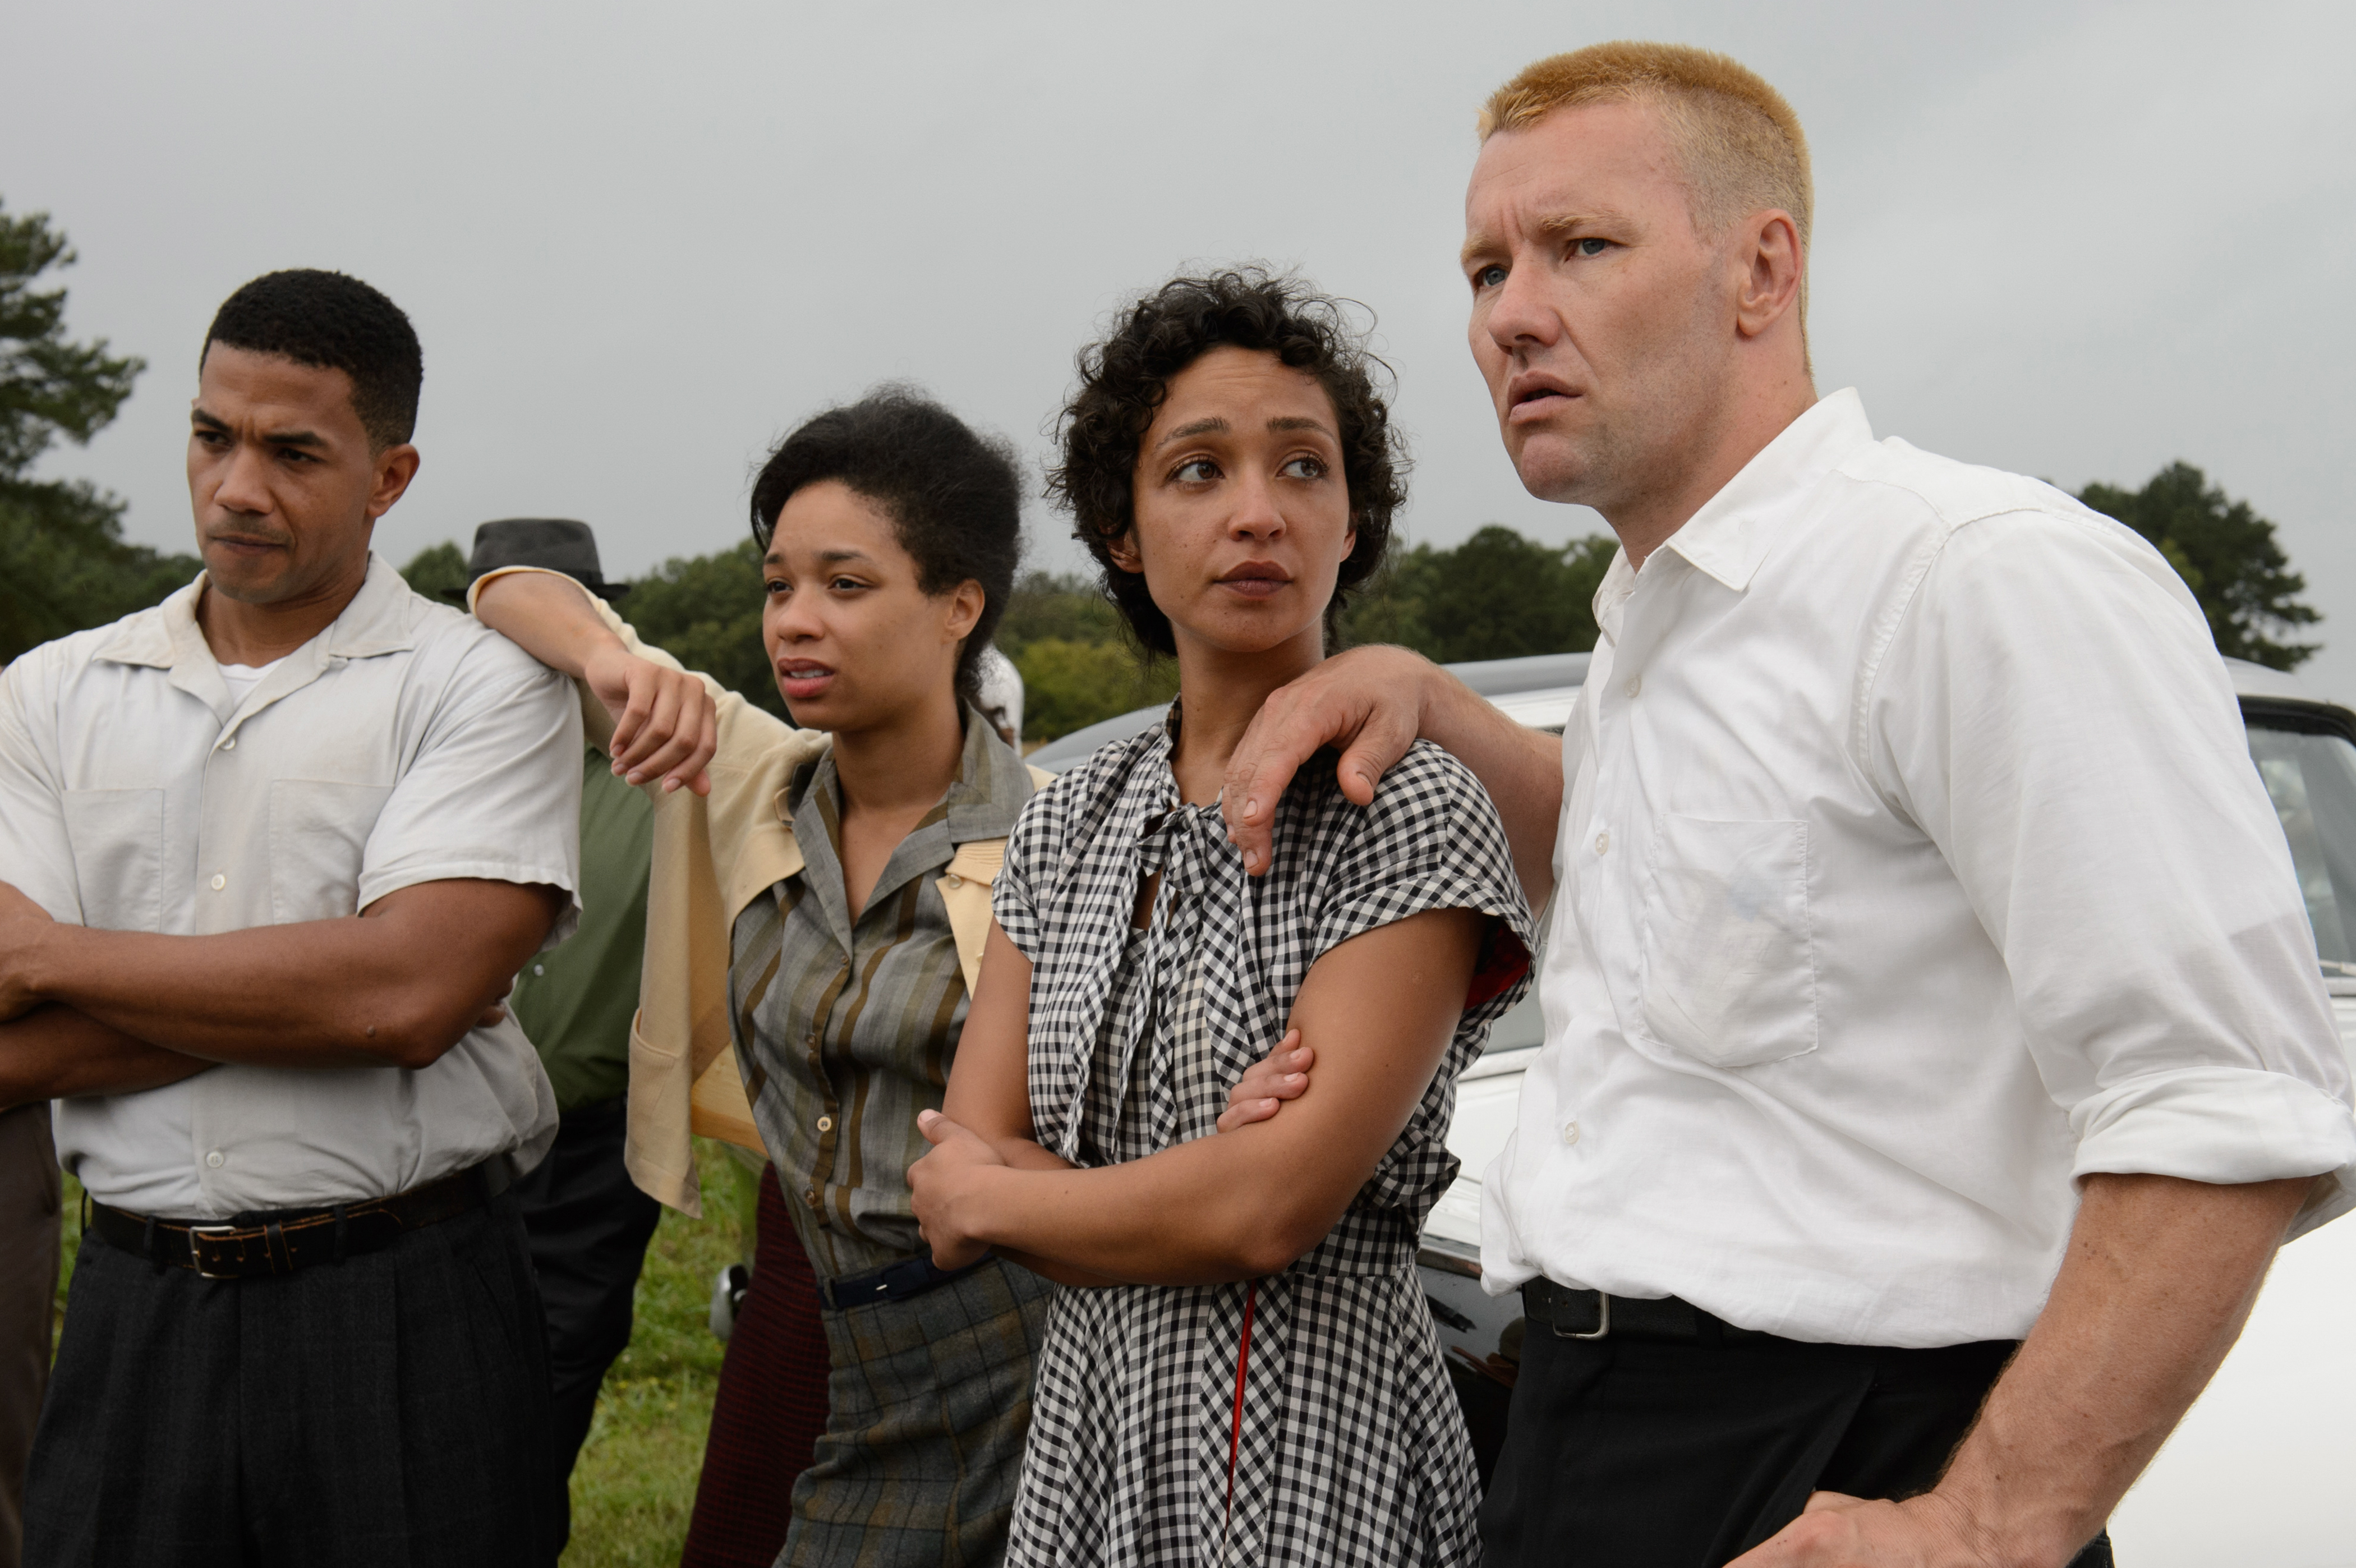 'Loving' Revives Social Issues from the Past